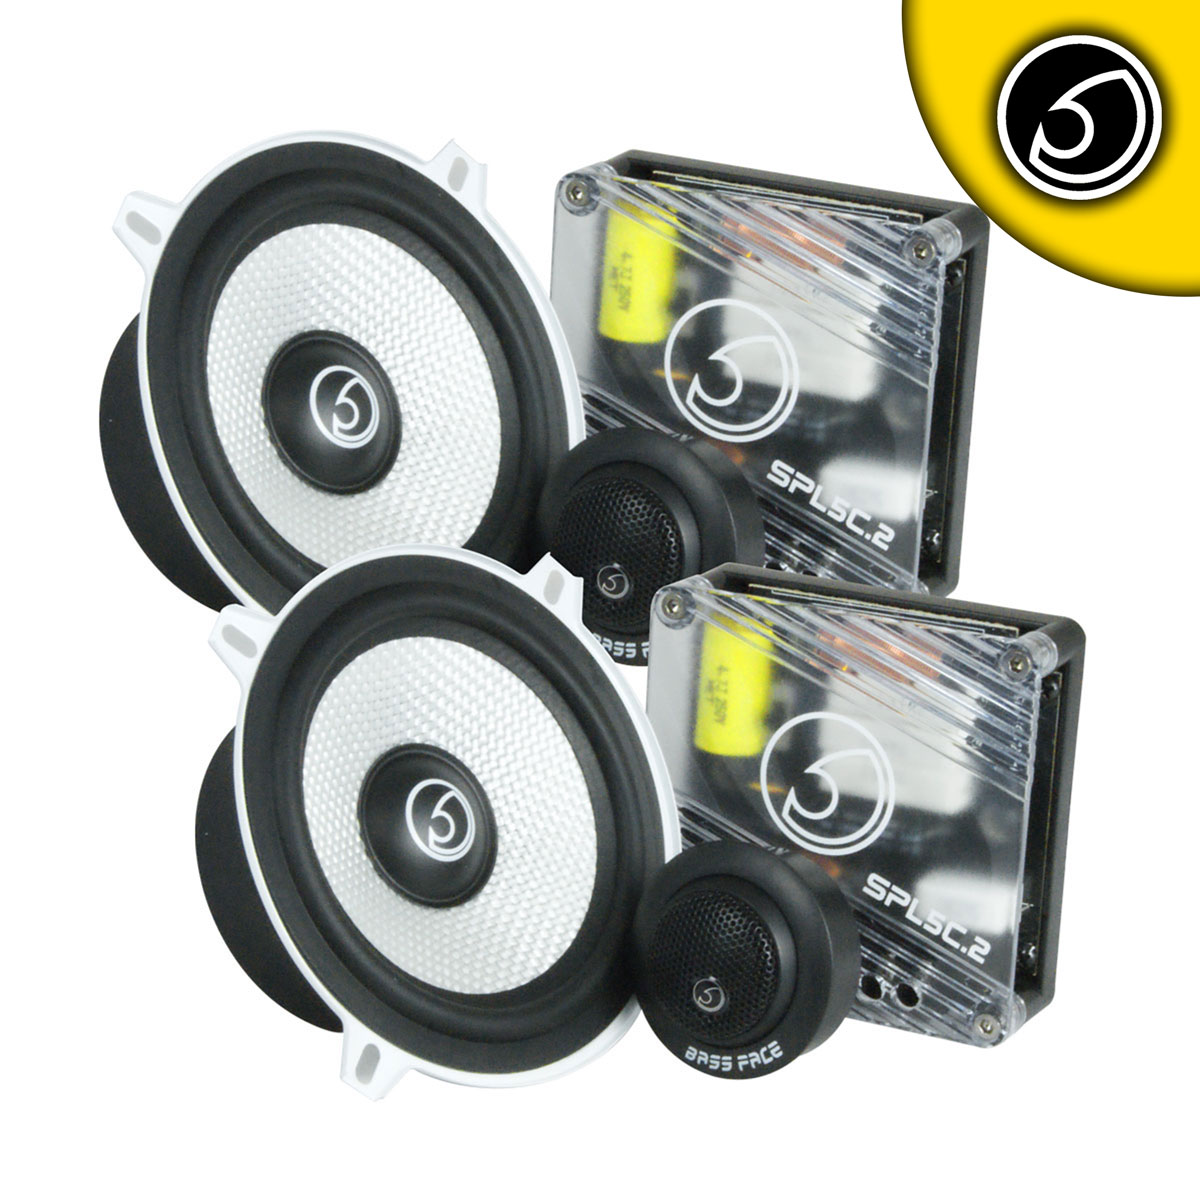 "Bassface SPL5C.2 700w 5.25"" Inch 13cm Car Door Component Speaker & Tweeter Kit"